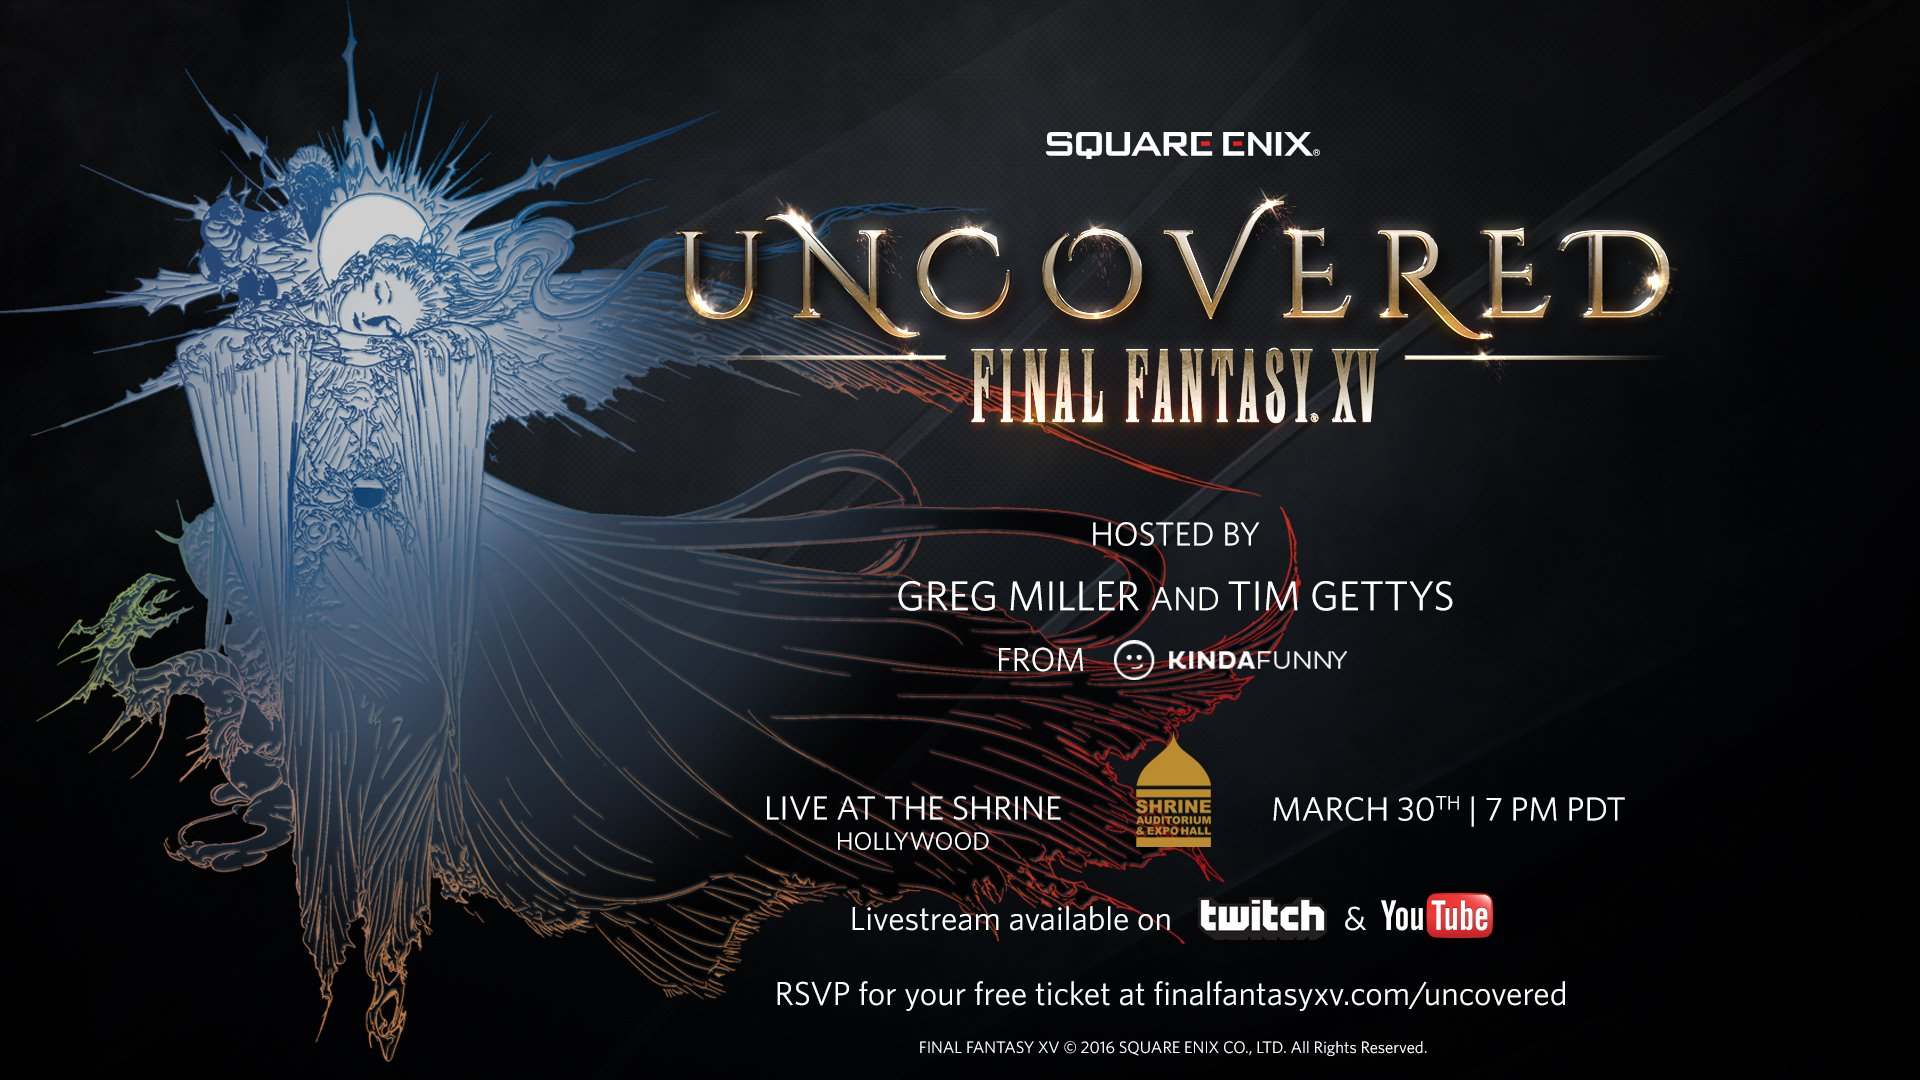 Final Fantasy XV Uncovered - ATR & Relese Date